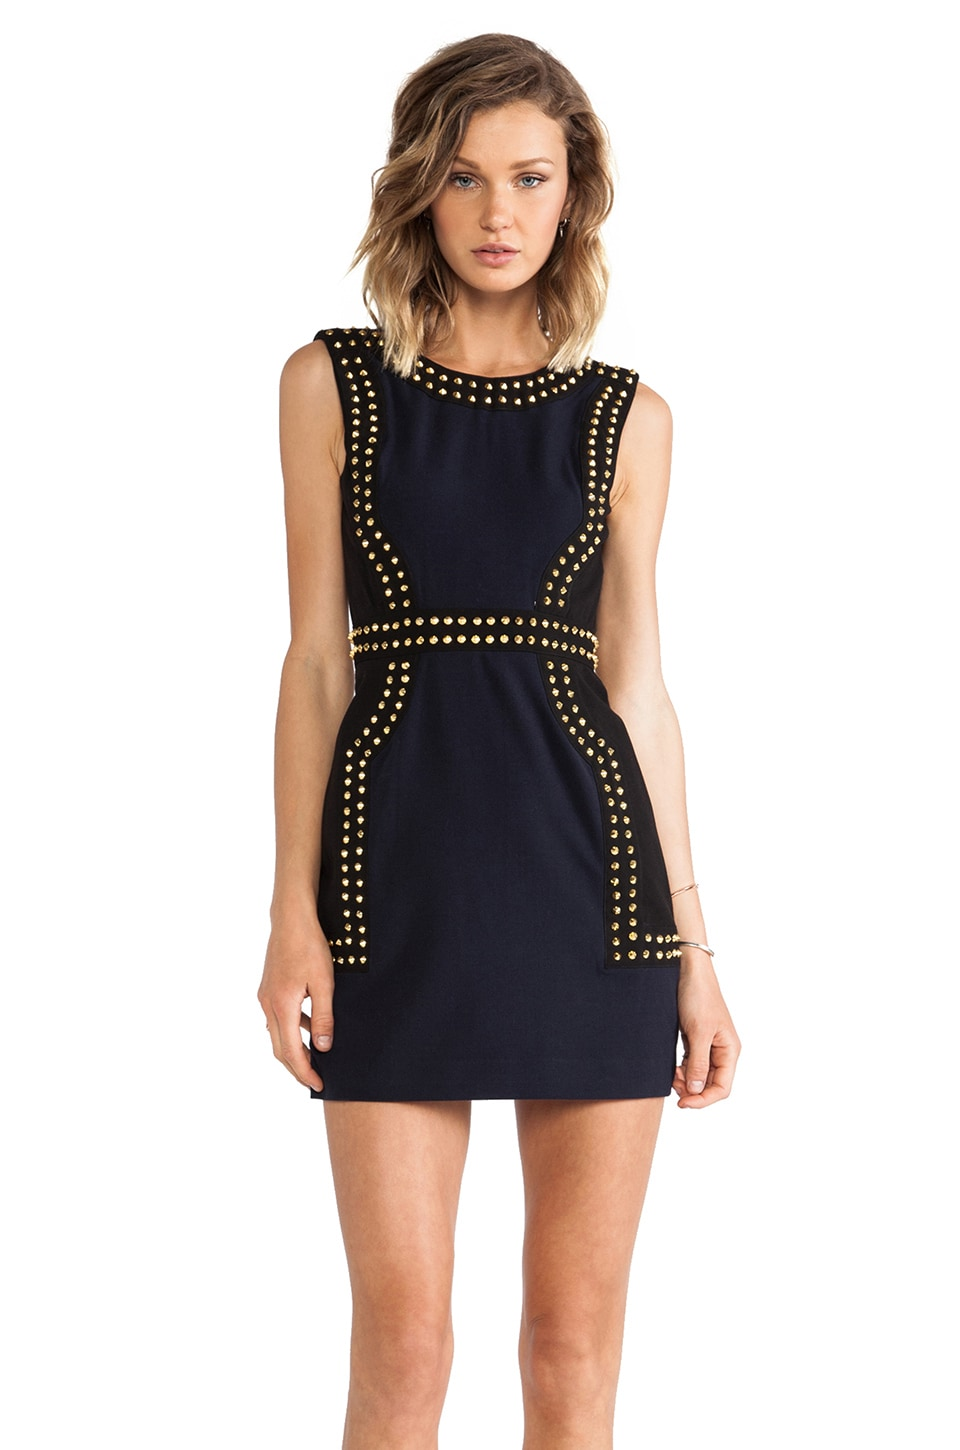 Finders Keepers One More Try Dress in Black/Indigo